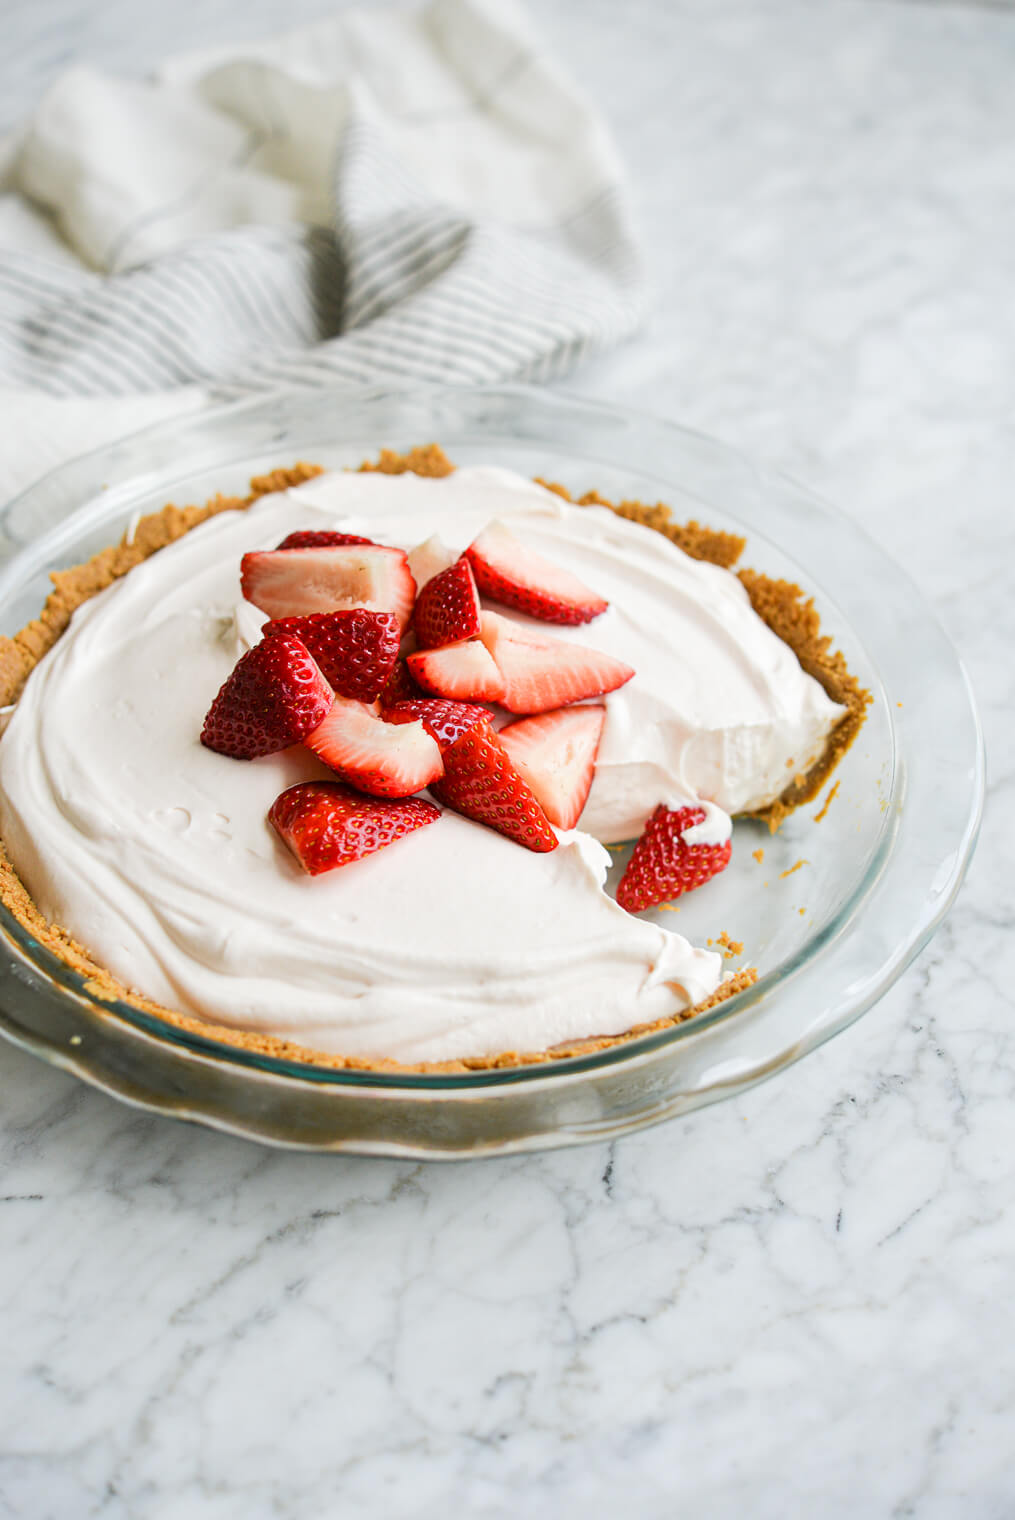 strawberry yogurt pie with a slice taken out of it topped with quartered strawberries on a marble surface